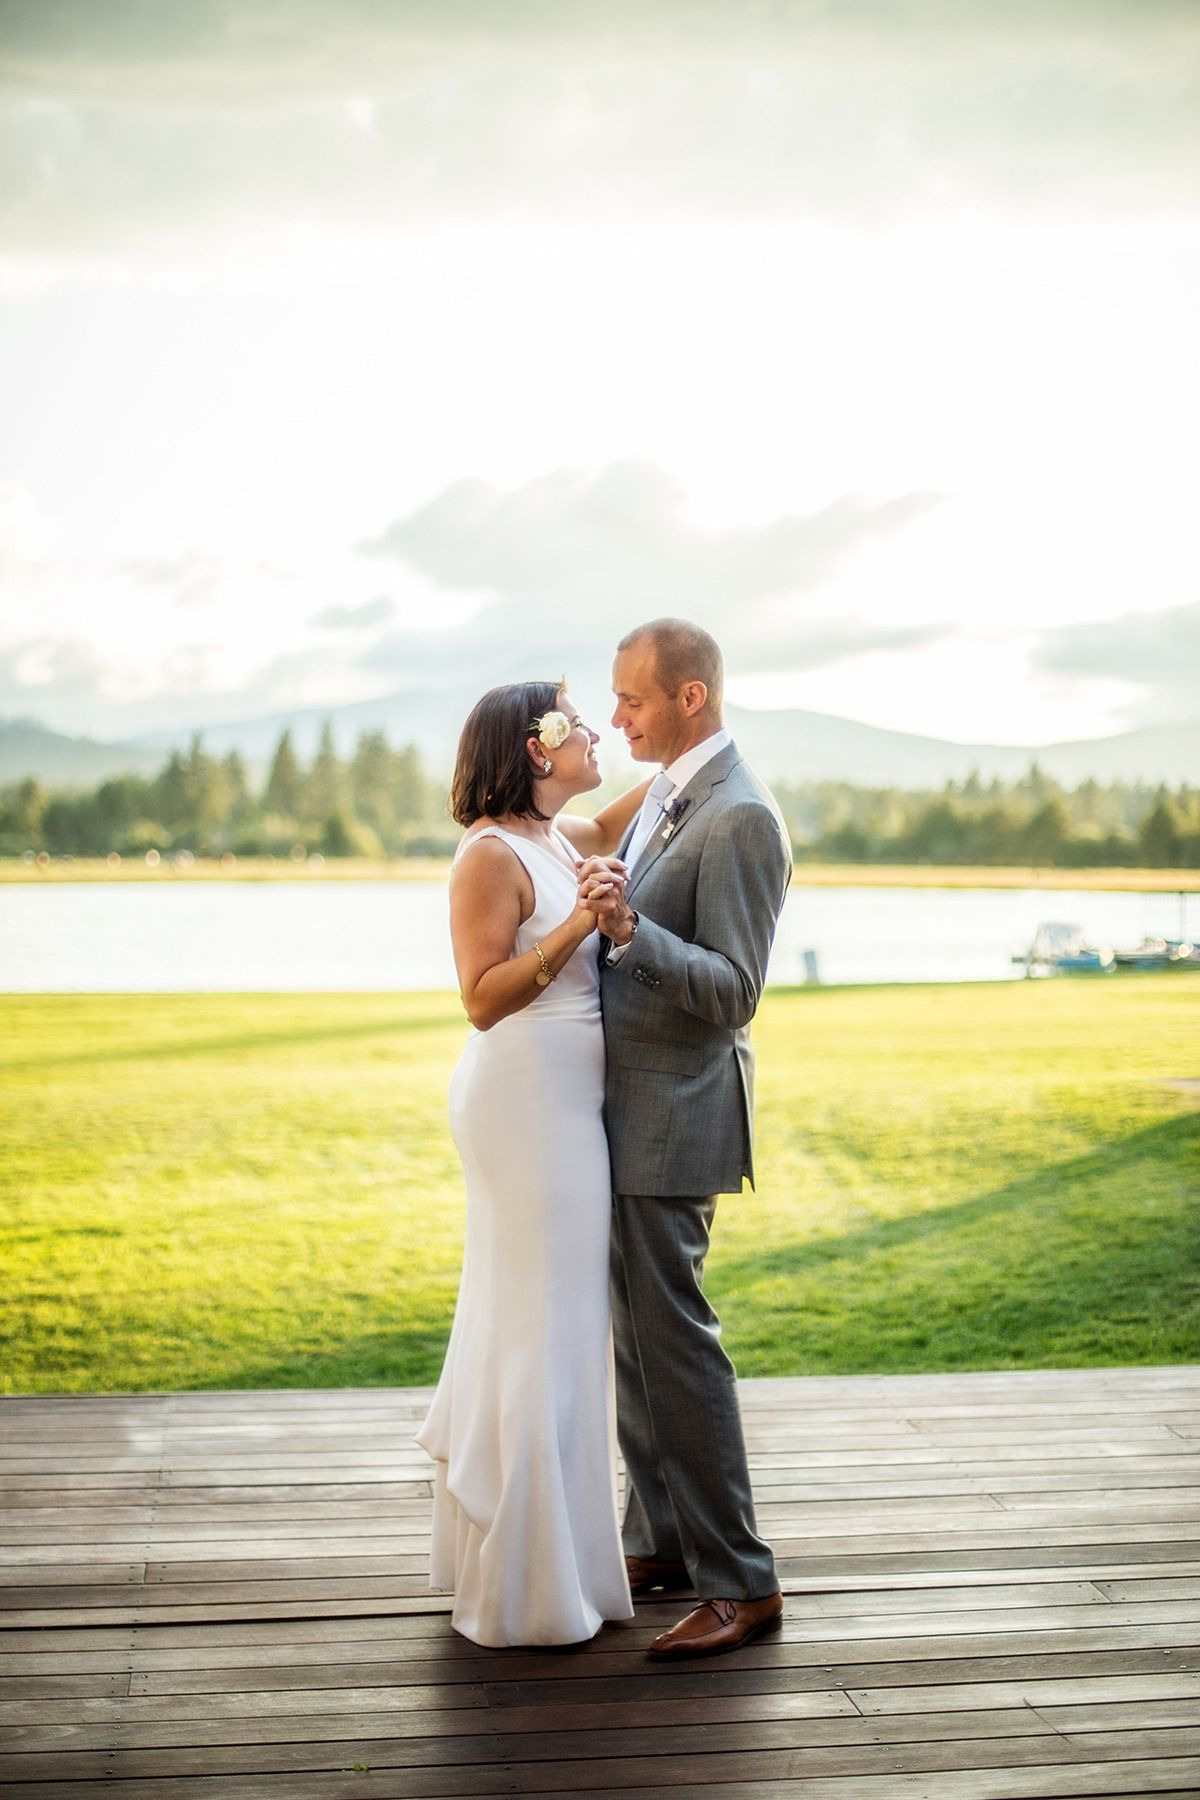 Elegant lakeside wedding at black butte ranch with images